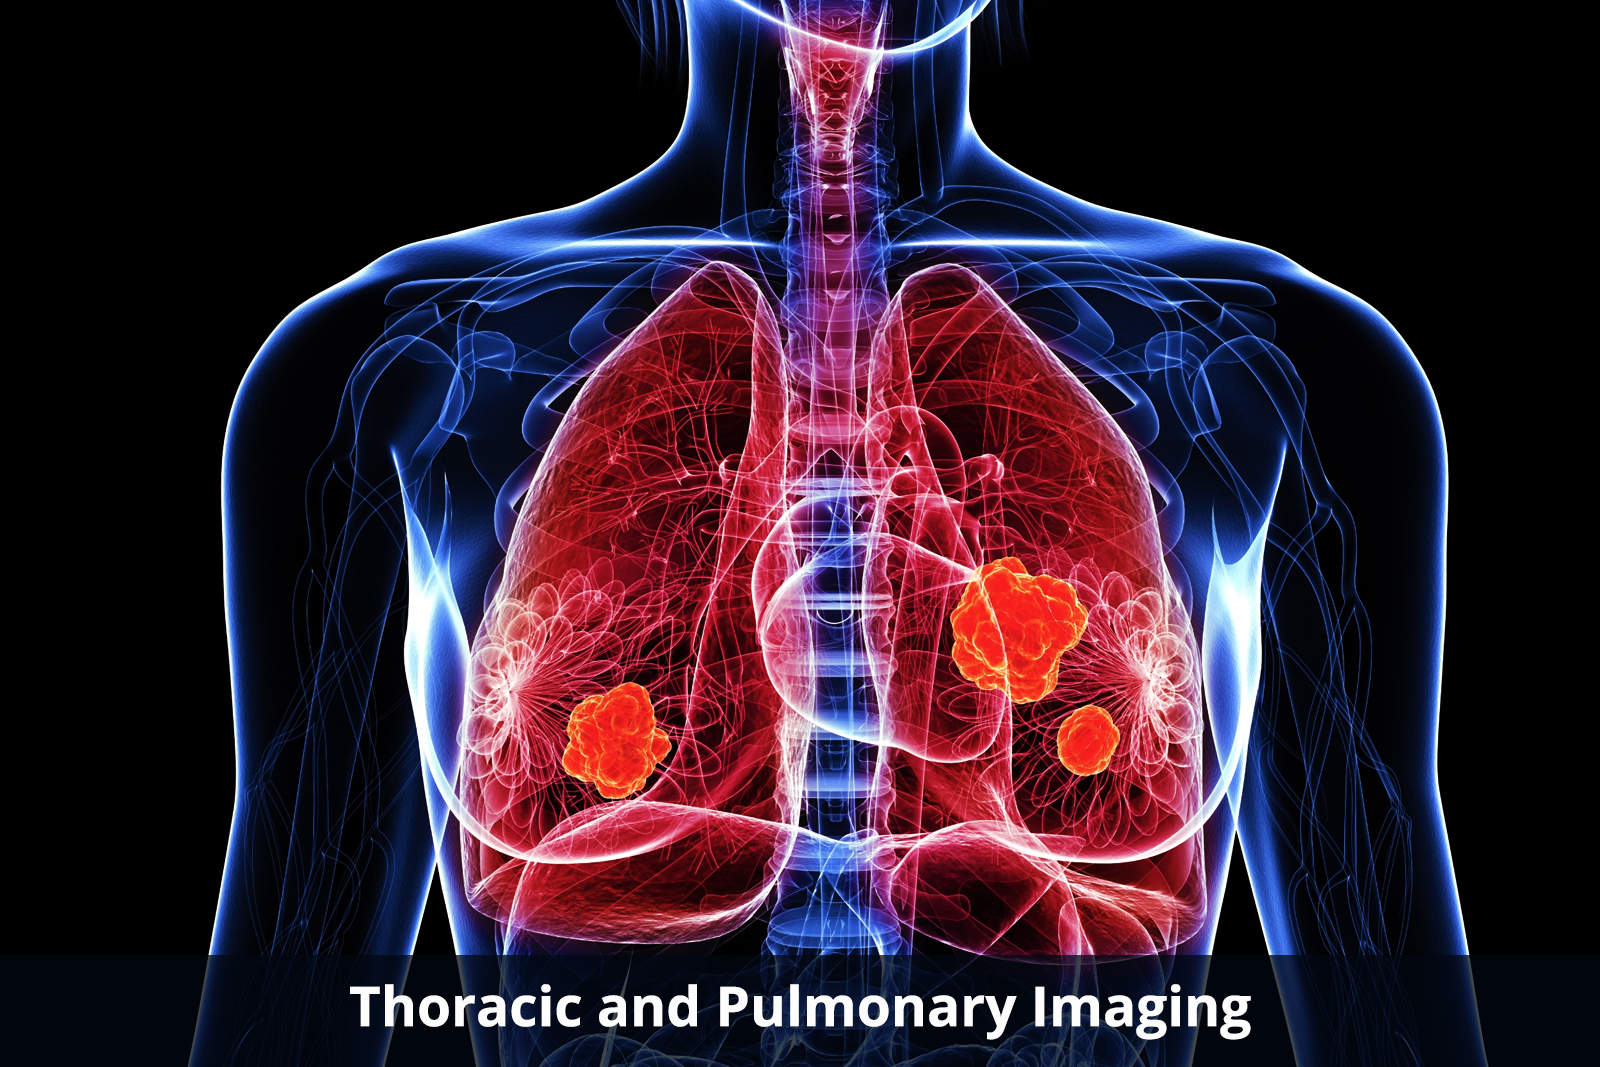 thoracic-and-pulmonary-imaging-about